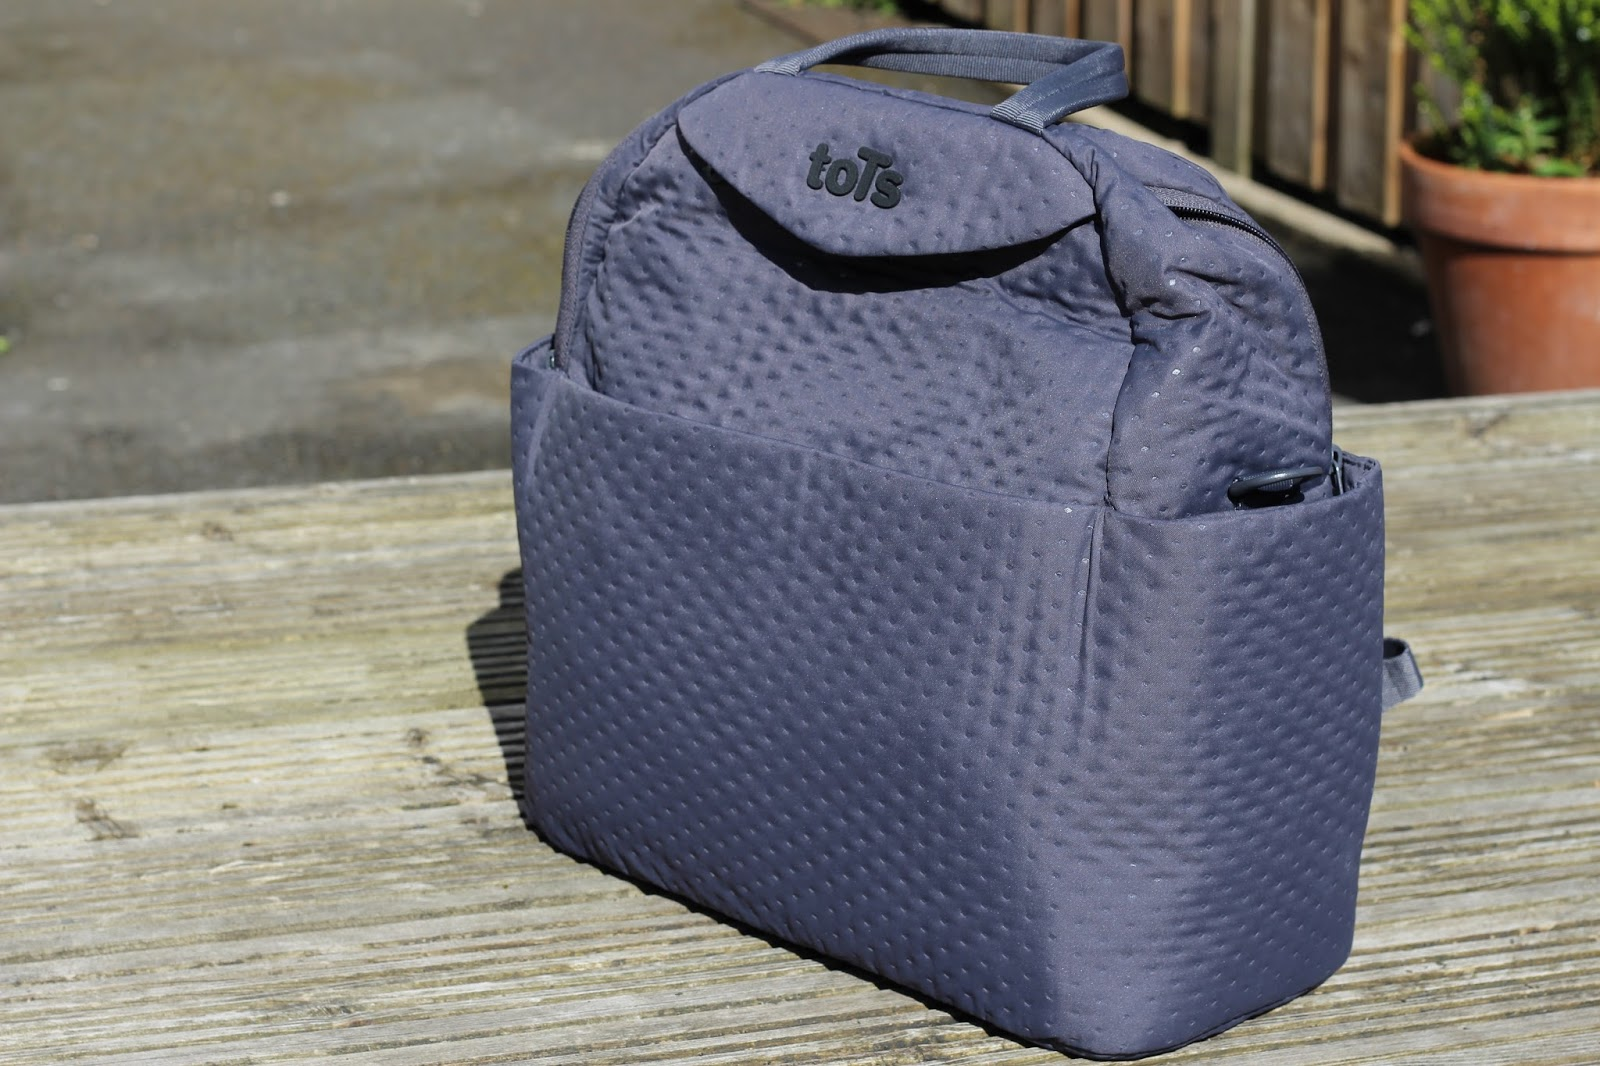 088d7737836 toTs Infinity Changing bag / Tea and blush